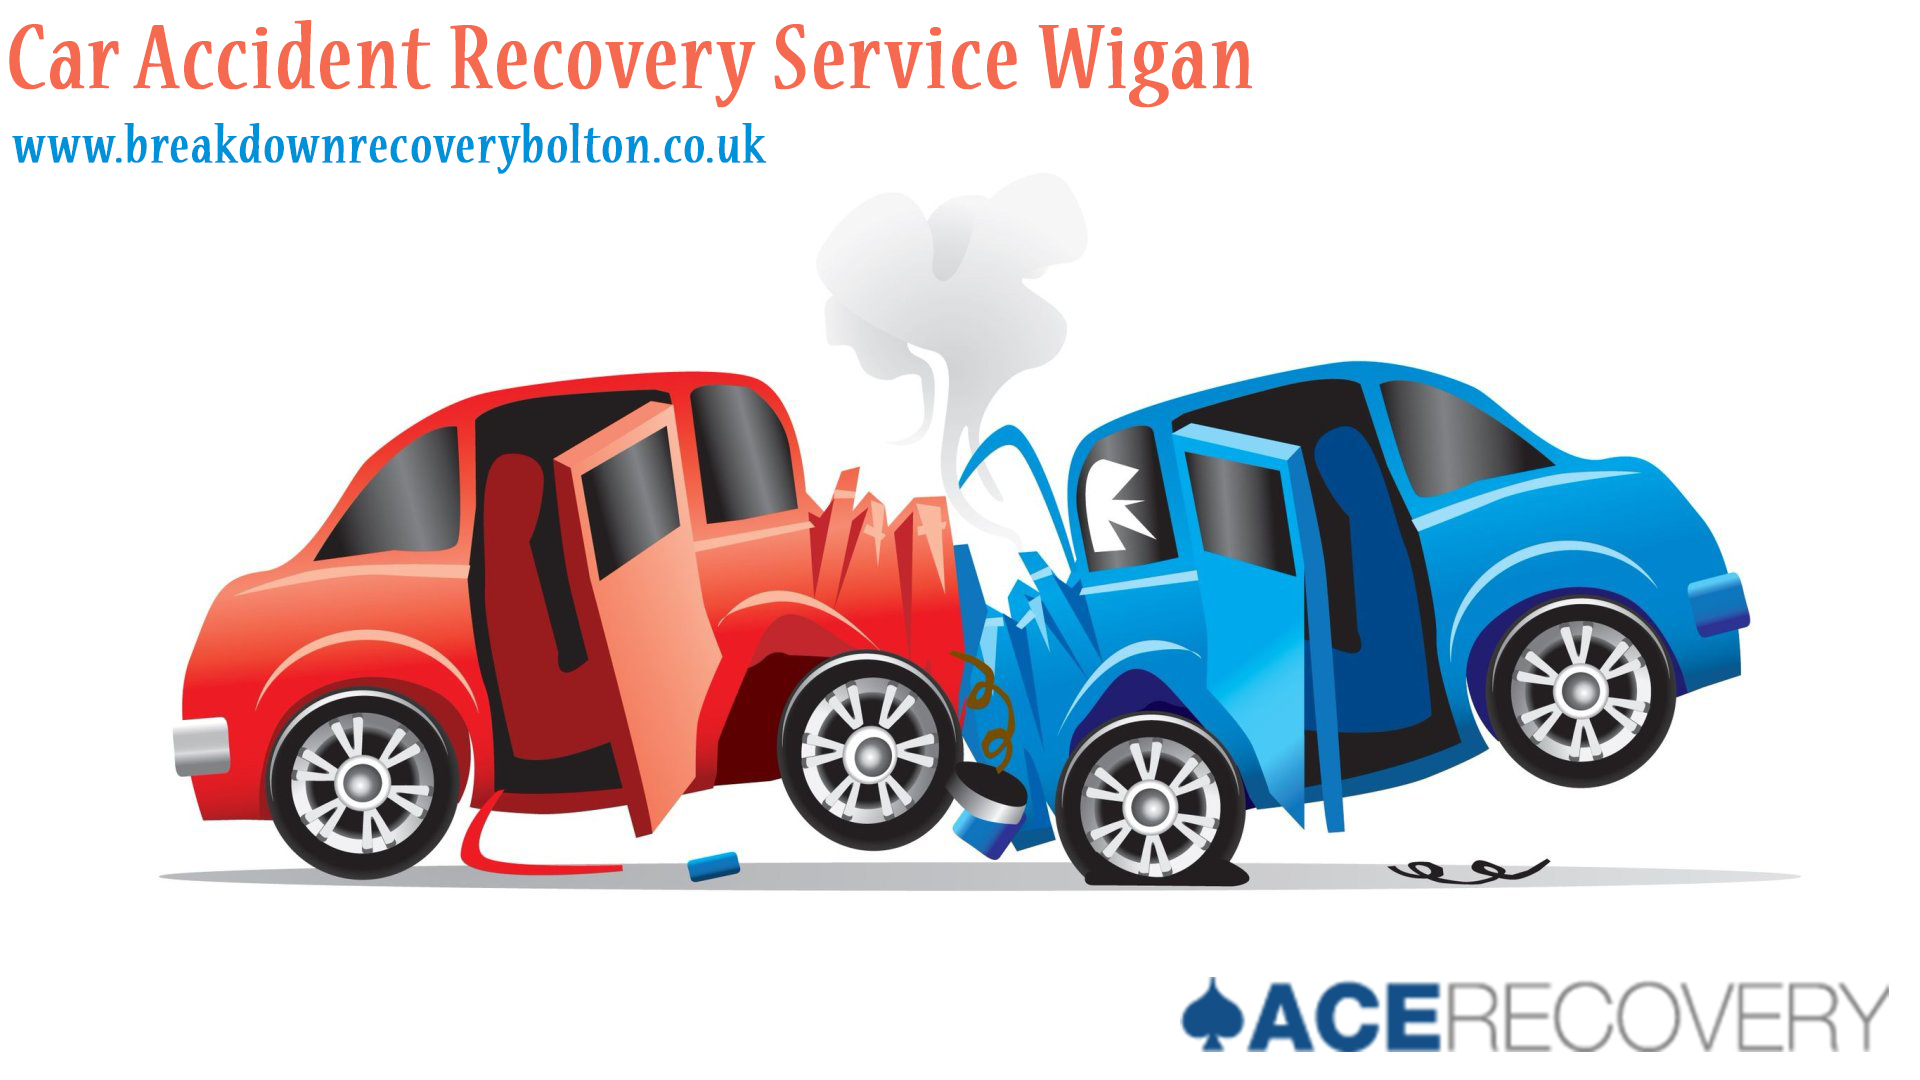 Car Accident Recovery Service Wigan